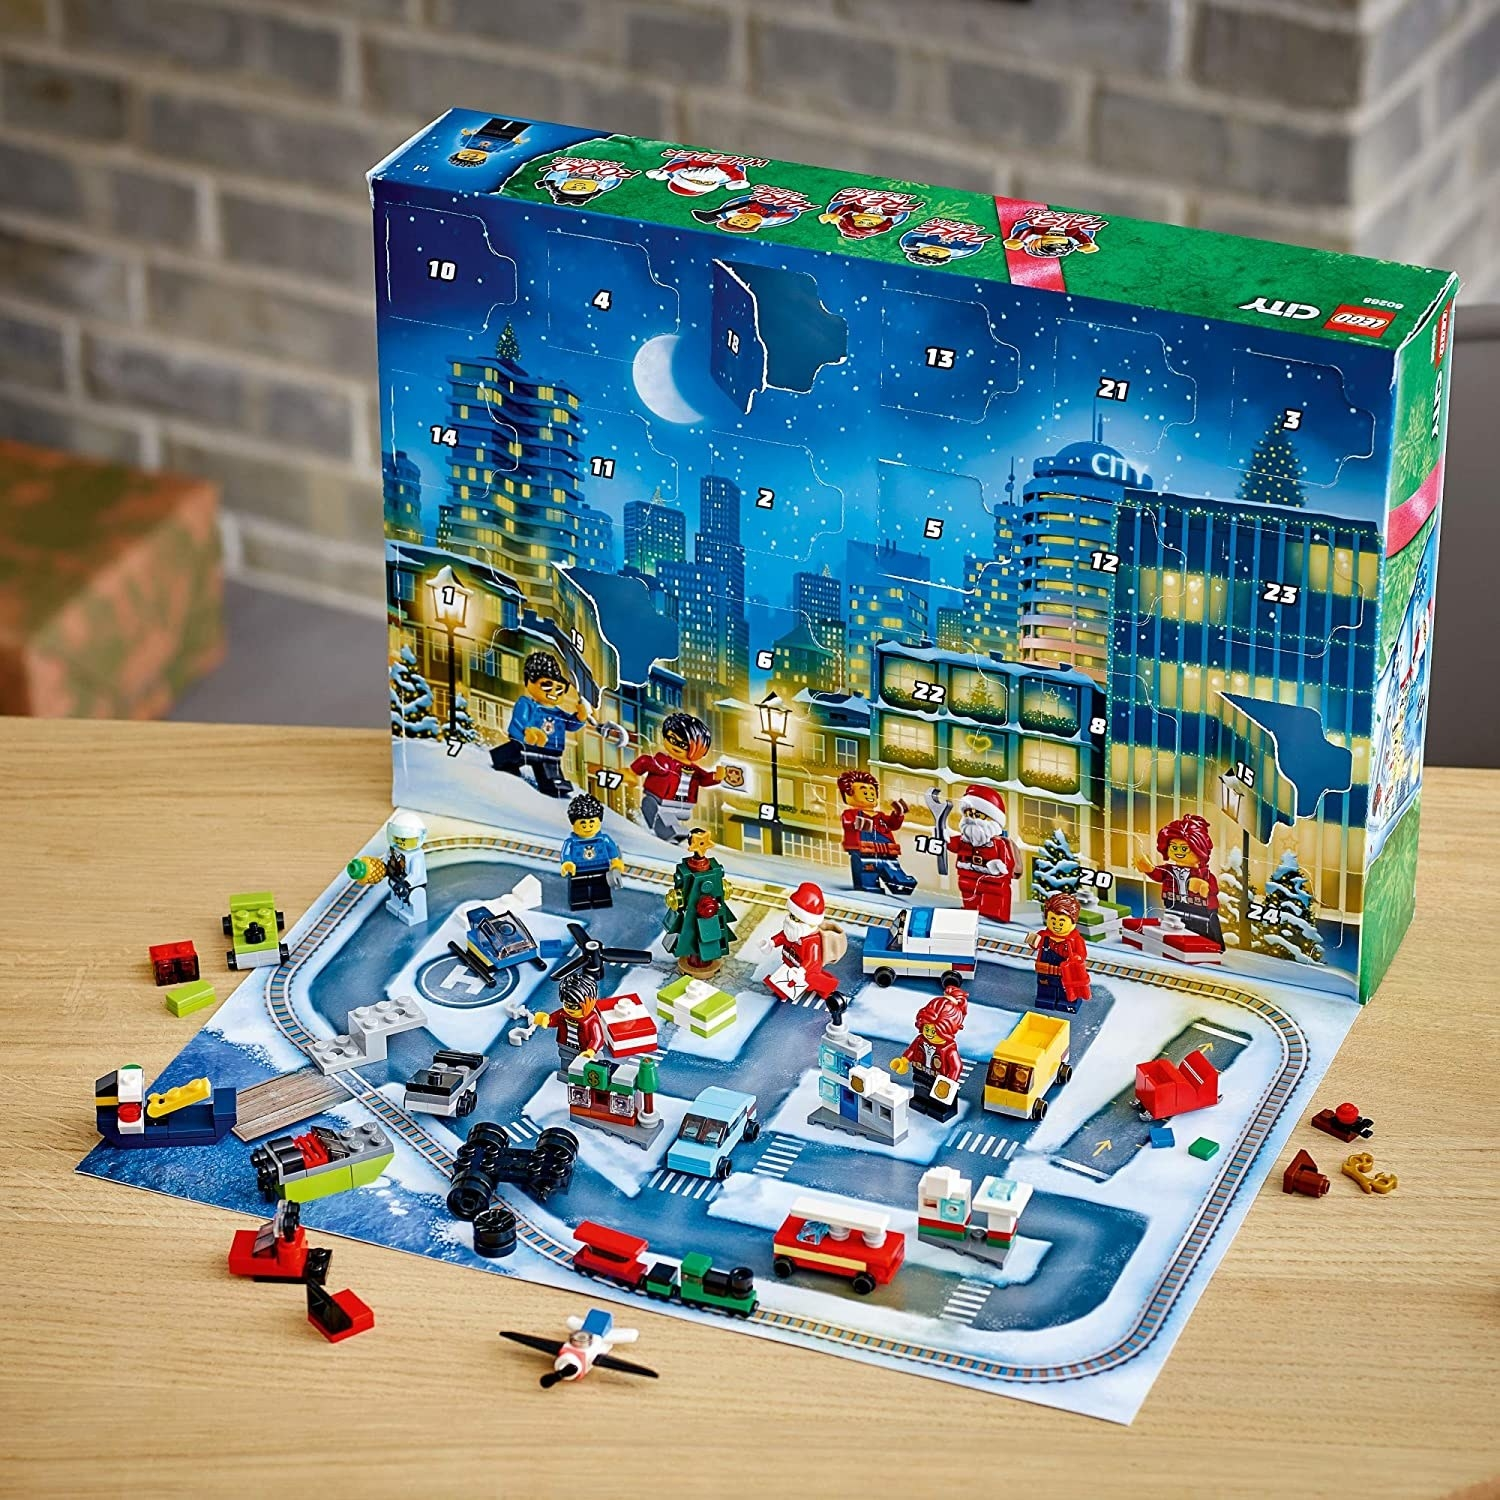 Opened Lego package with a holiday-themed city scene and small toys and figures